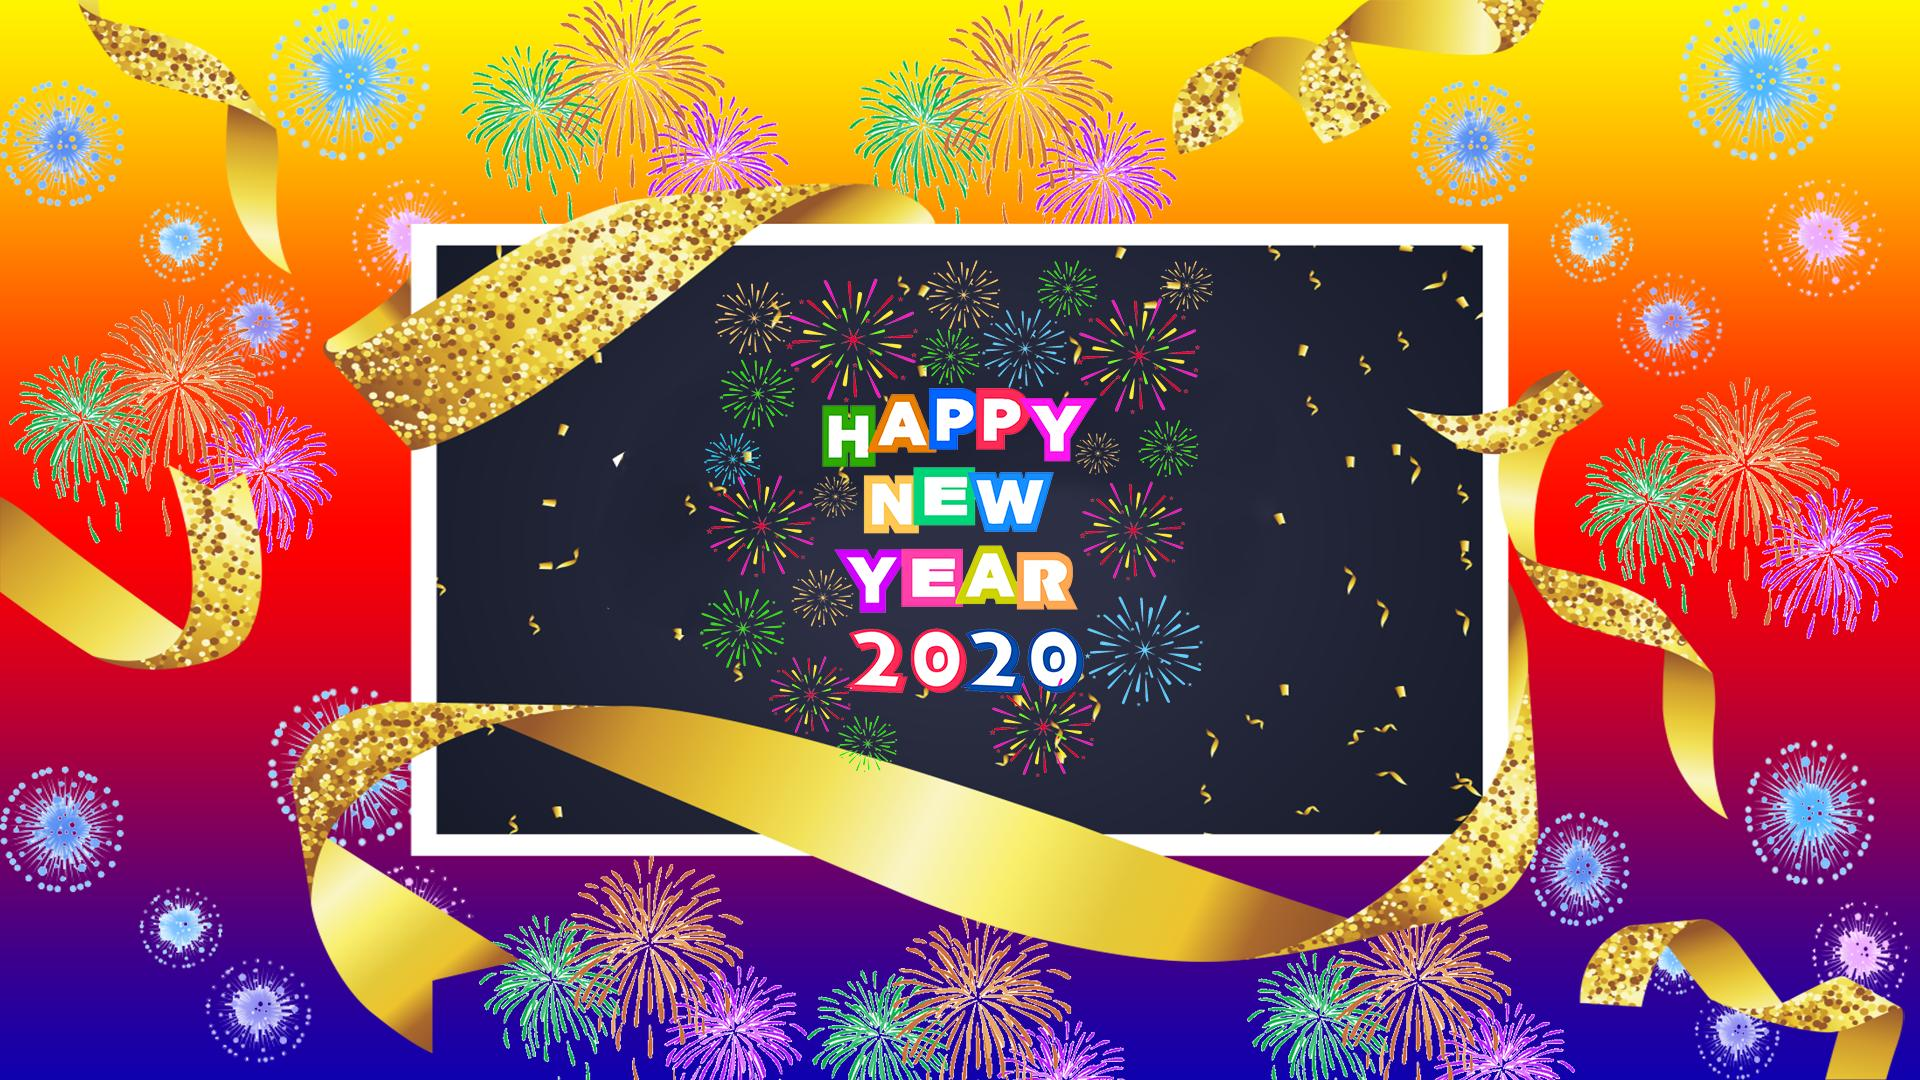 Happy new year 2020 CD banner backgrounds HD image – Aoraki